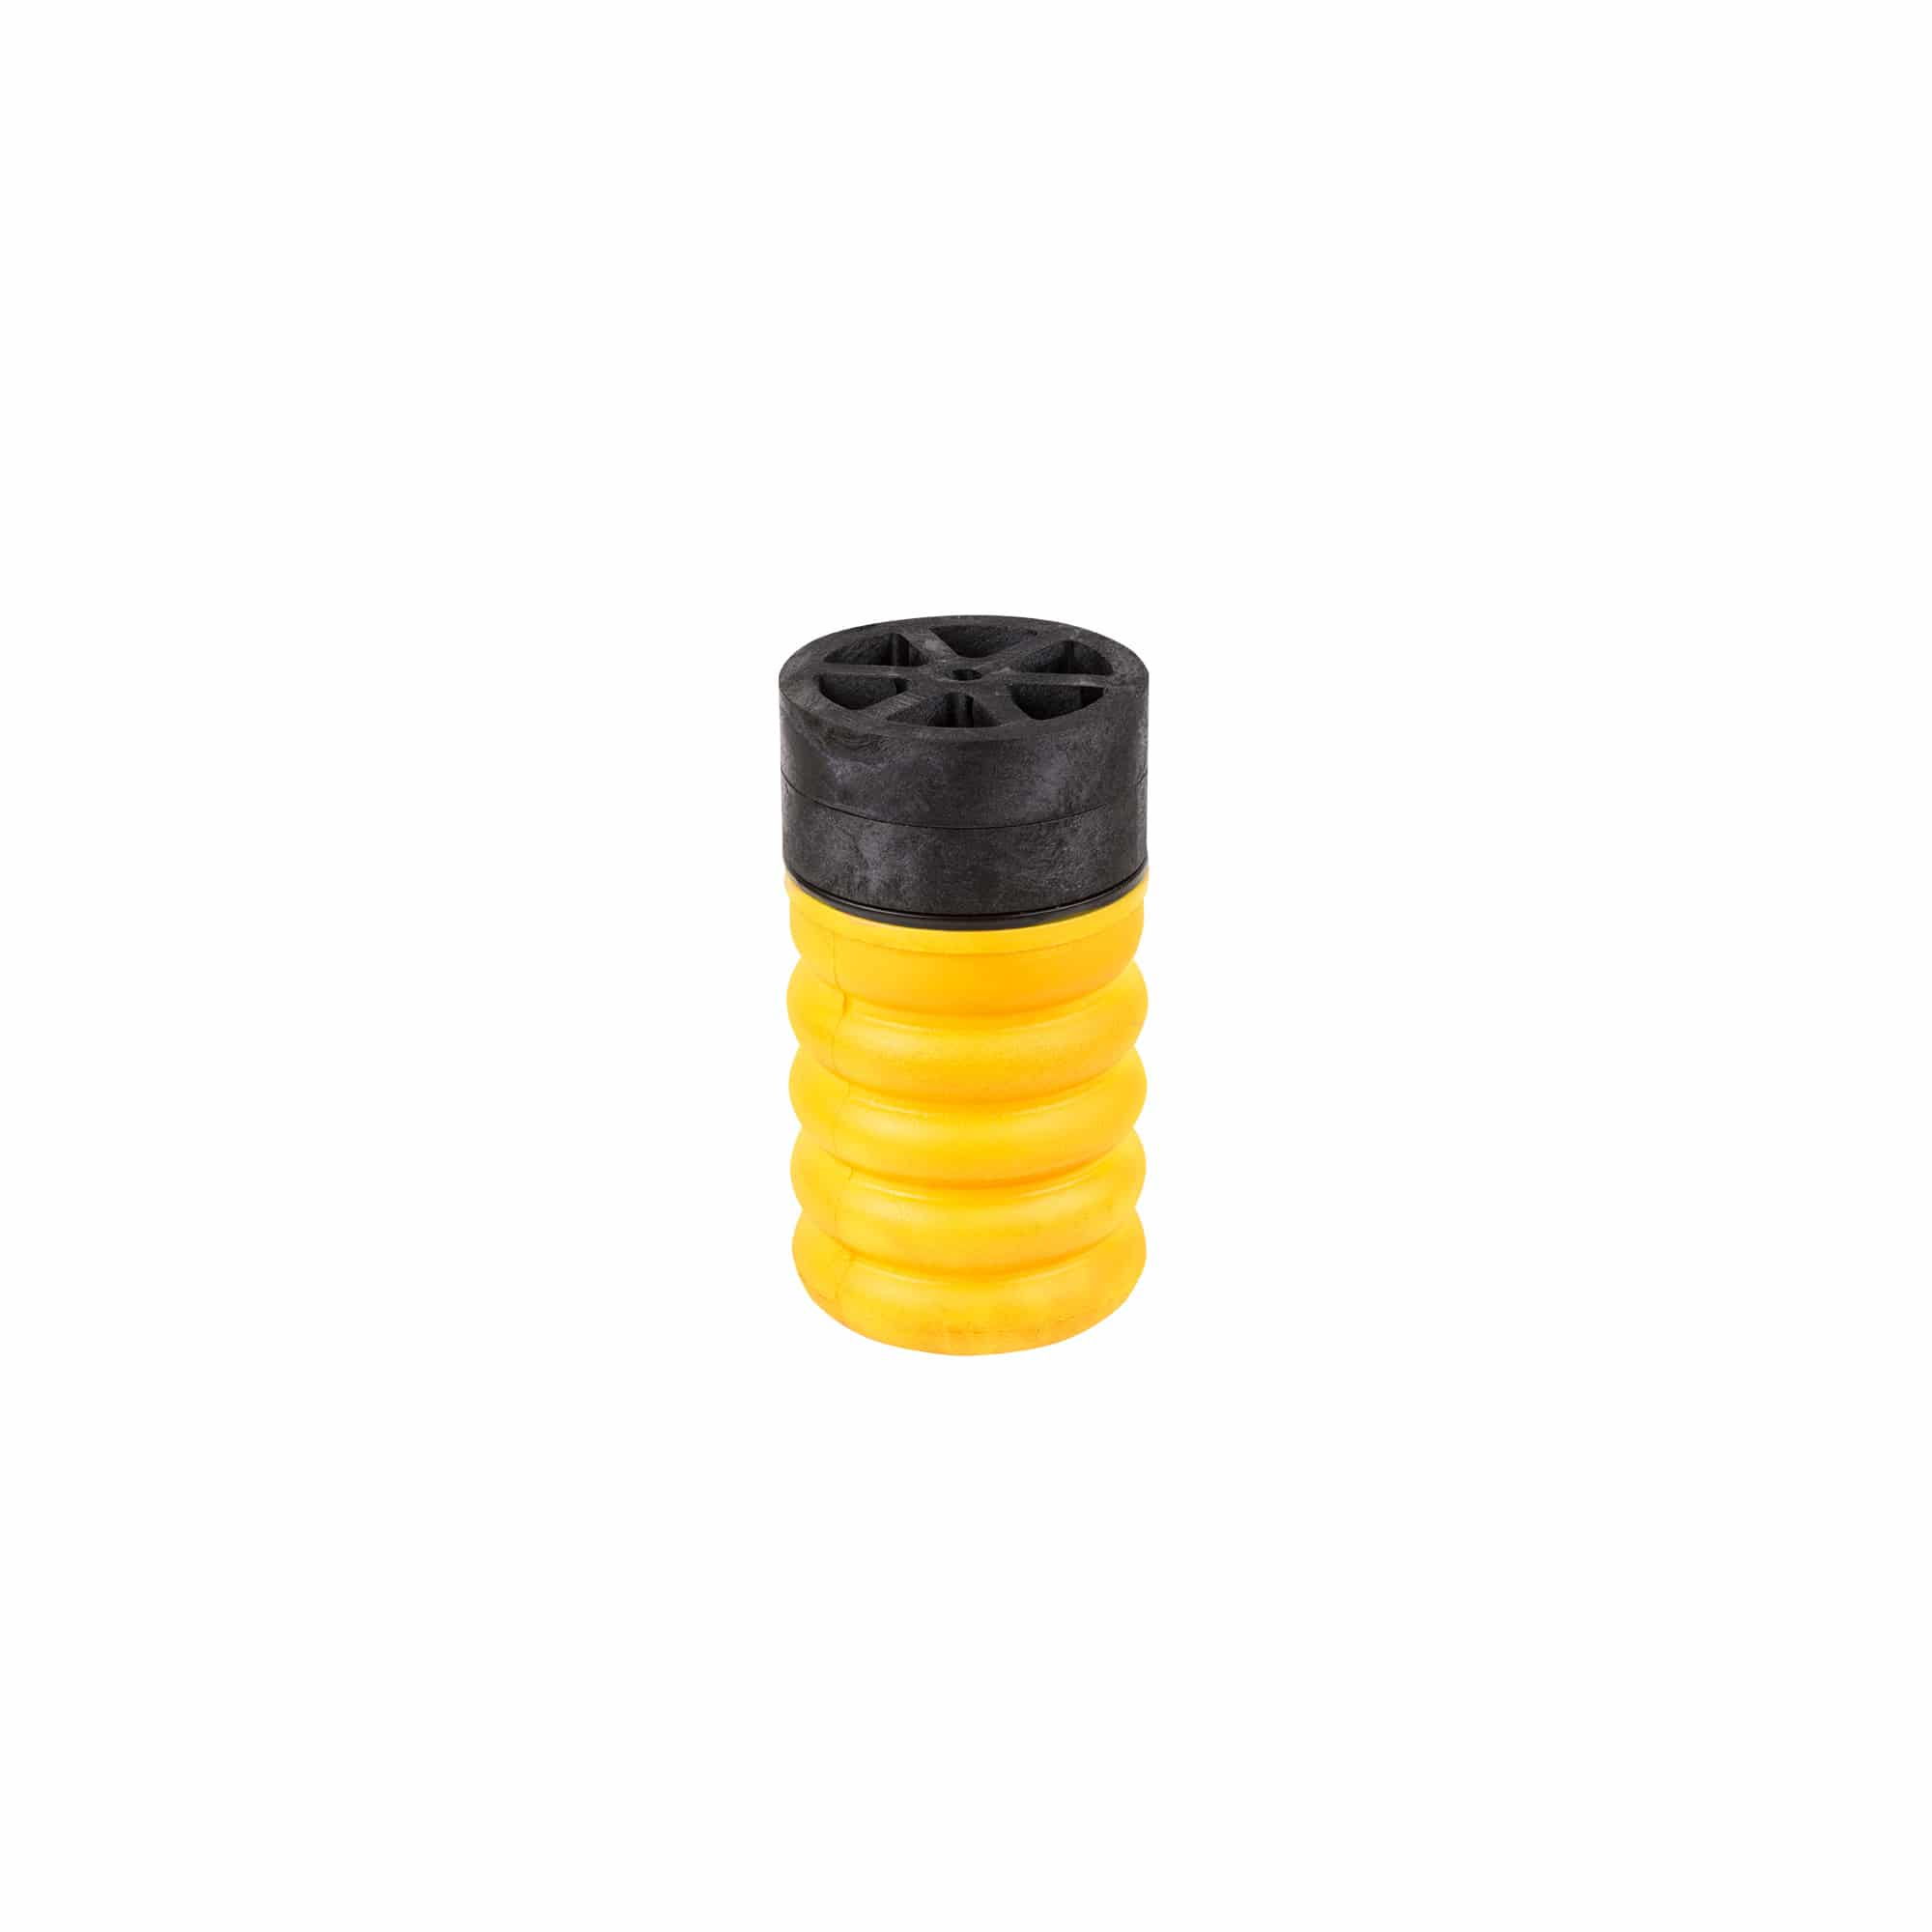 sfr 104 54 sumosprings front and or rear for fabricators and